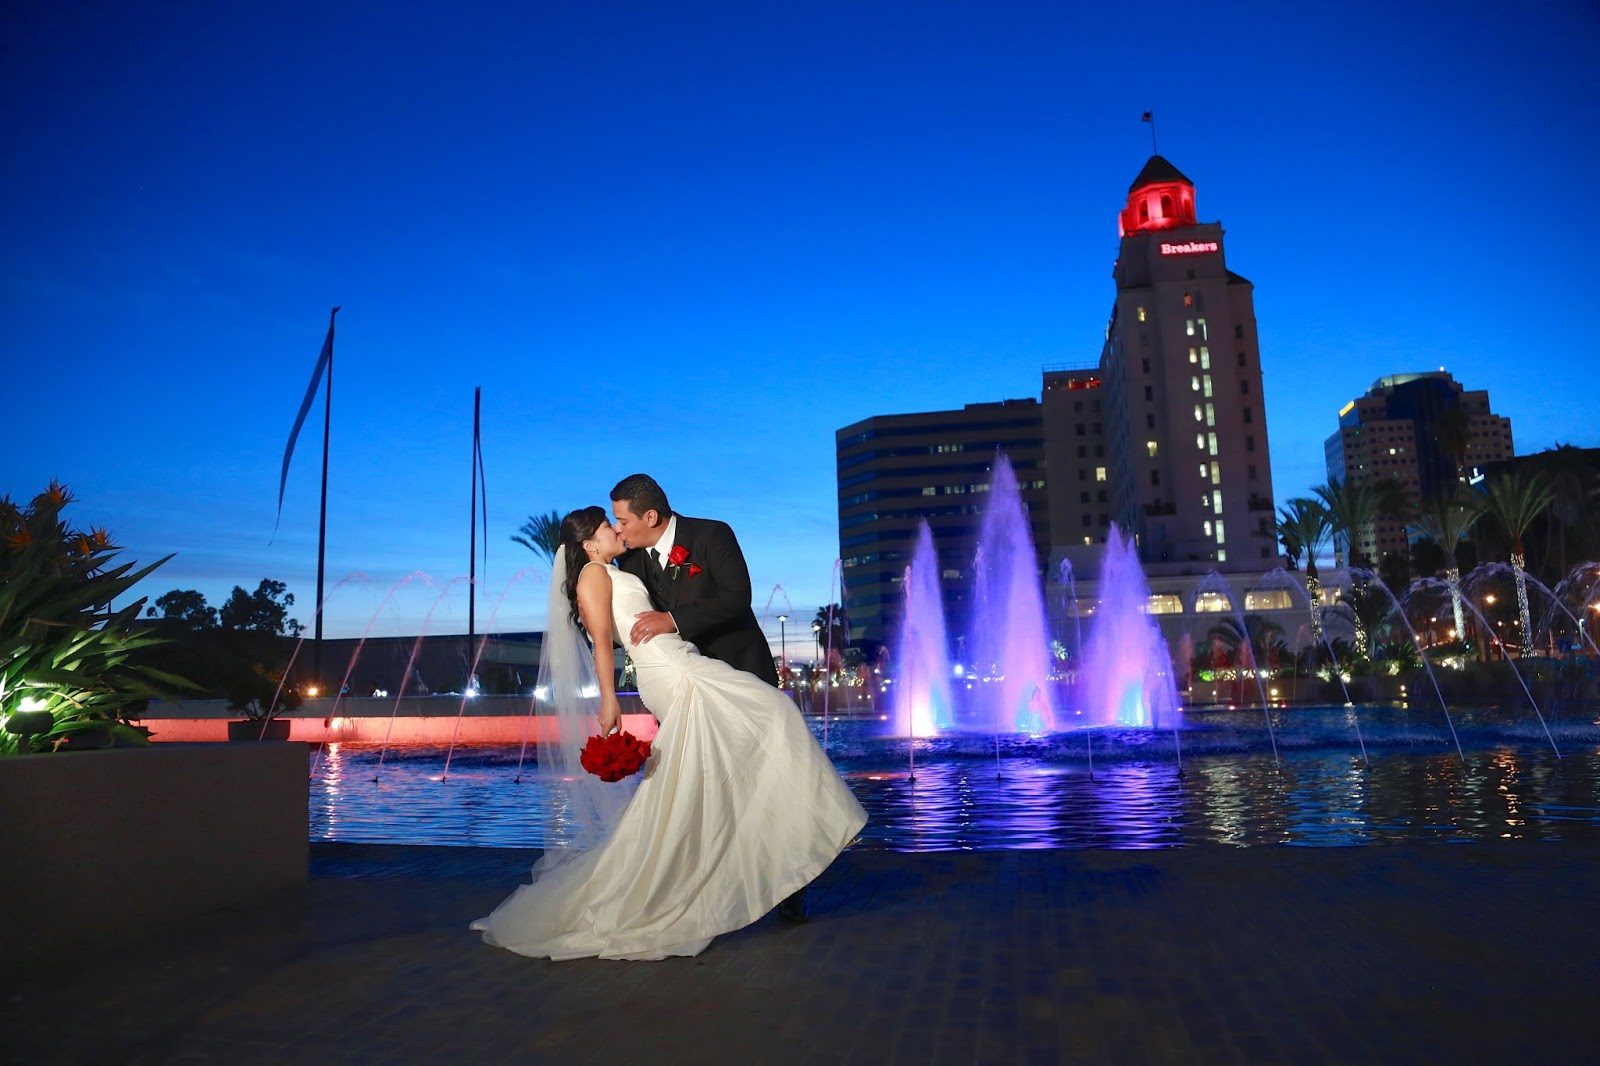 Enchanted Portraiture: Hector and Kelly at the Sky Room Long Beach